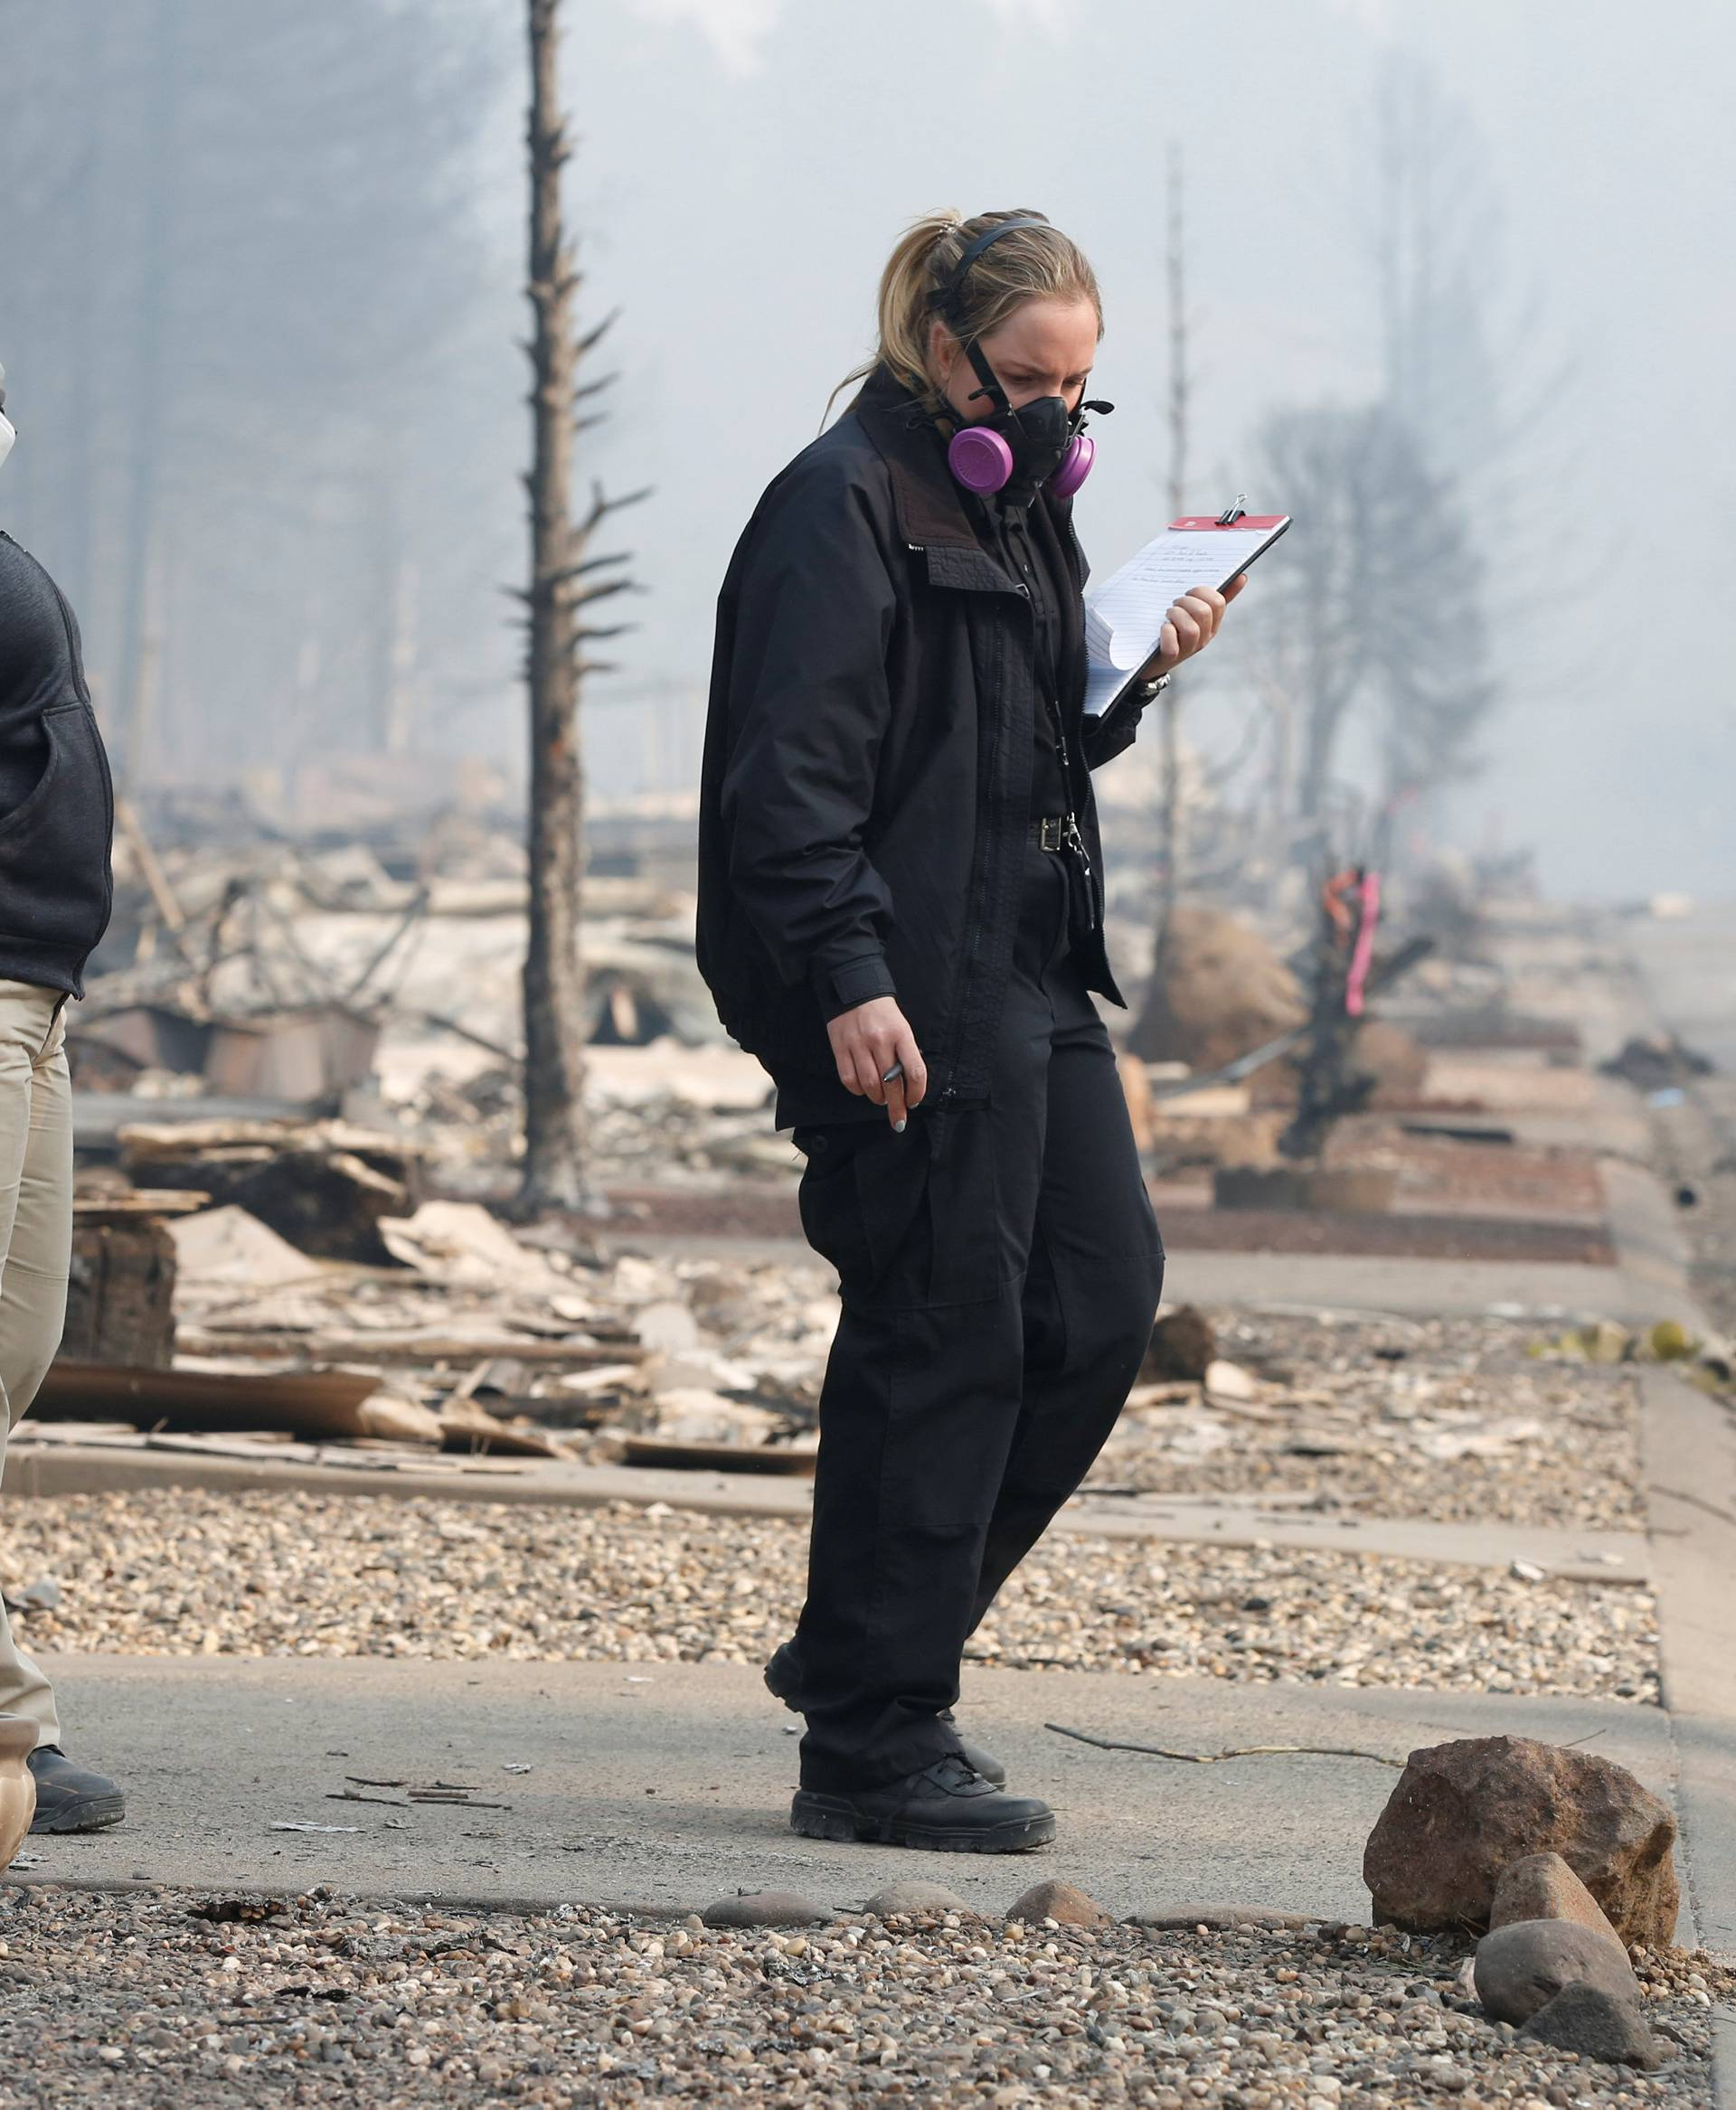 Marin County Forensic Technician Alexandra Torres (L) and San Mateo County Deputy Coroner Elizabeth Ortiz recover human remains from a trailer home destroyed by the Camp Fire in Paradise